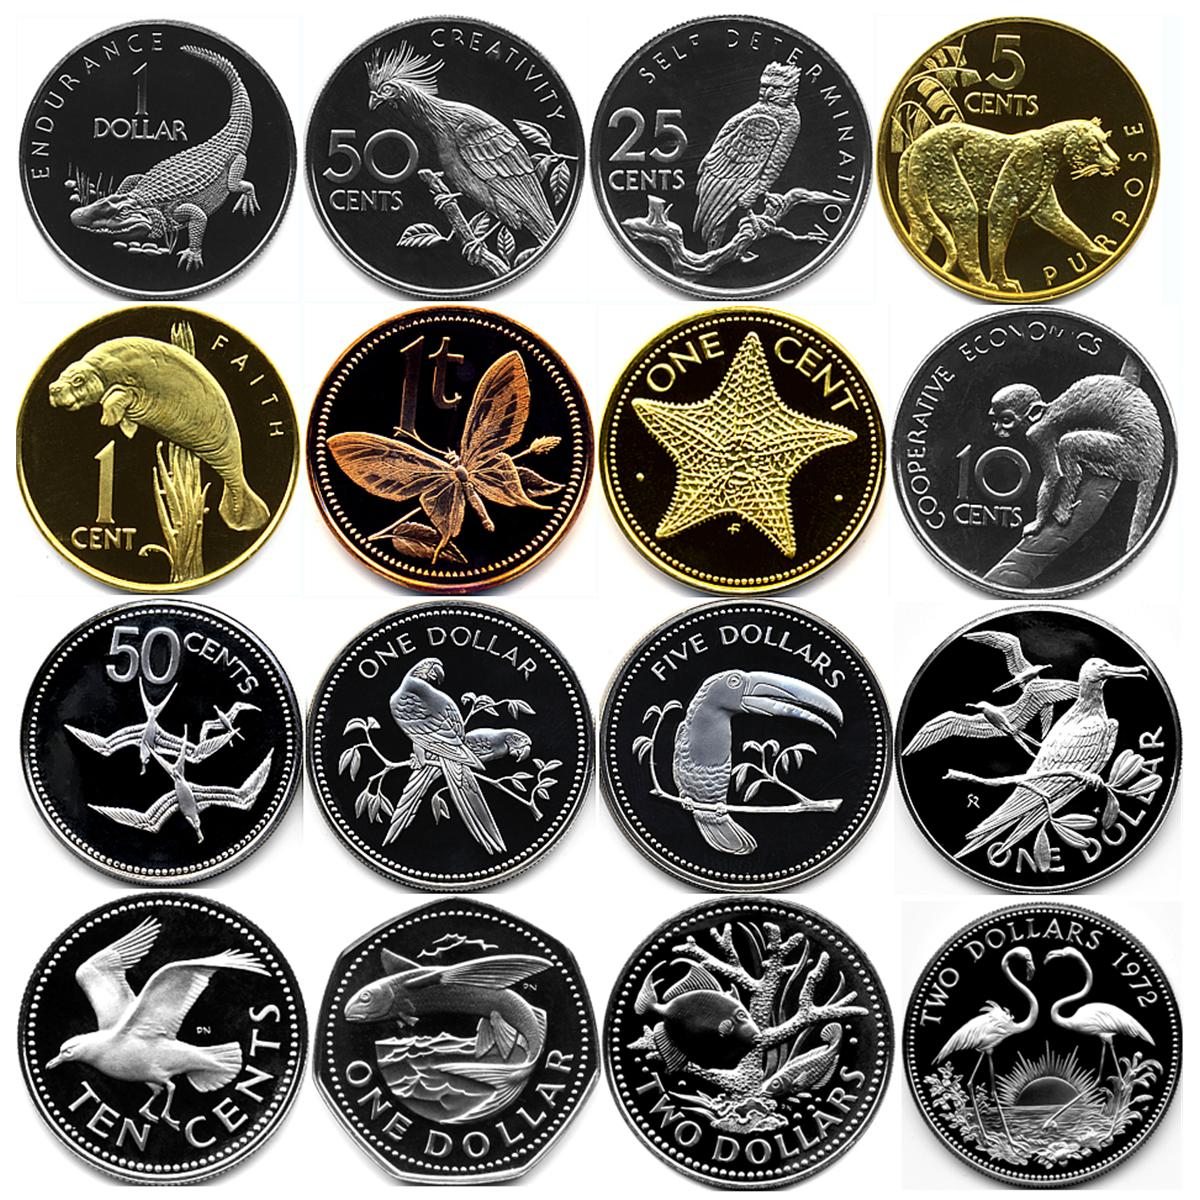 16 animal proof coins from around the worldapproximately